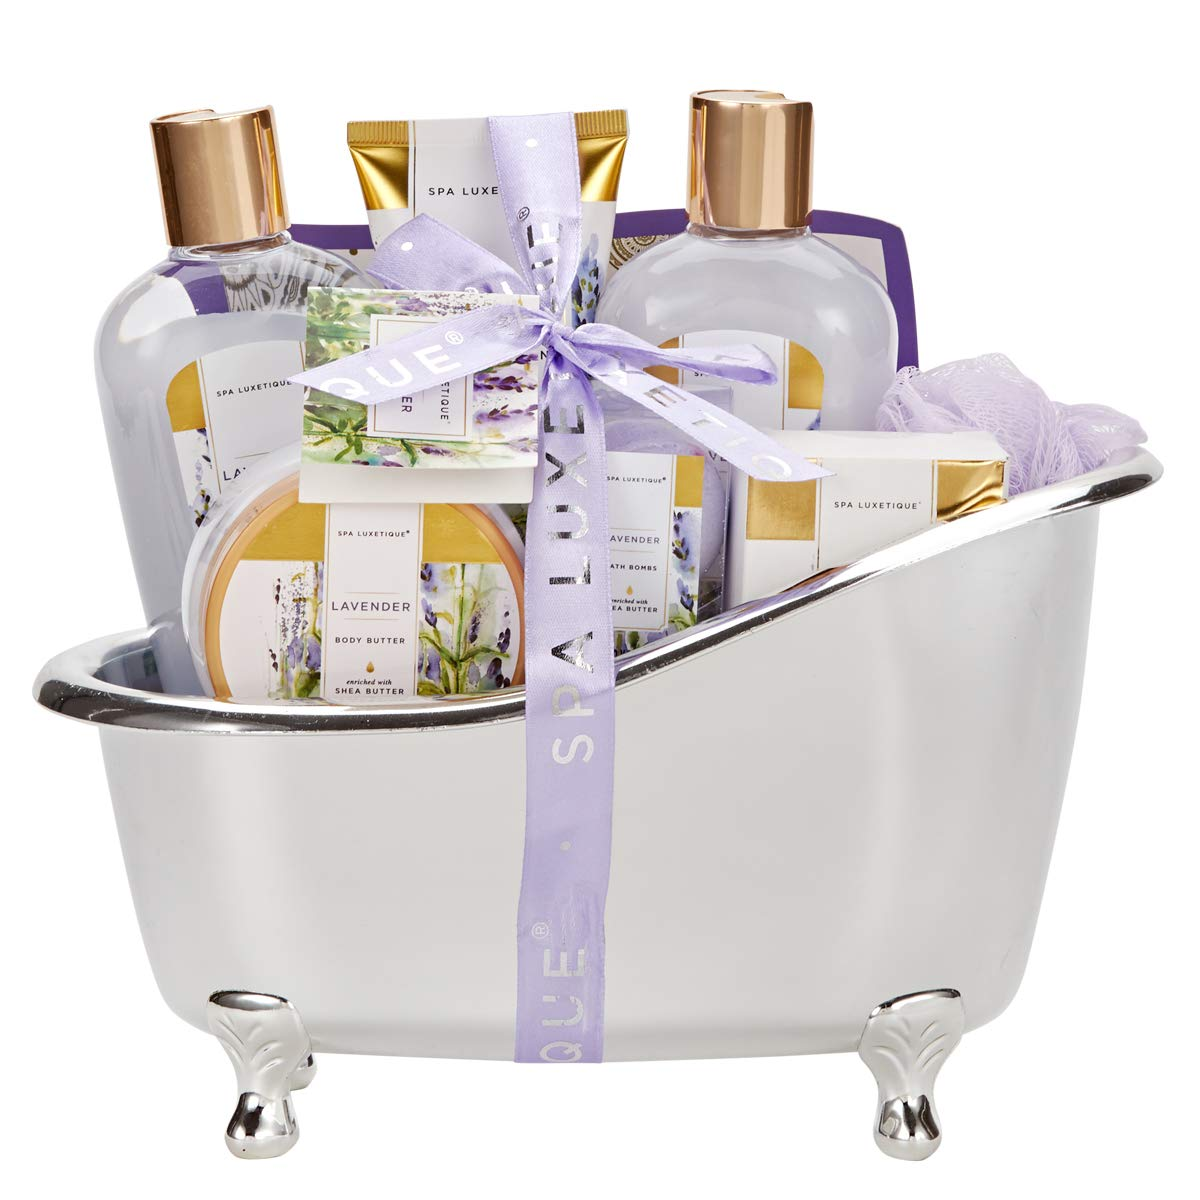 BUY IT: amazon.com, $19.99After all the stress of hosting a baby shower, set the hostess up for an afternoon of relaxation with a spa gift set. This 8-piece set comes with relaxing lavender essential oil, bath bombs, body lotion, and more, all packed up in a cute miniature bathtub.